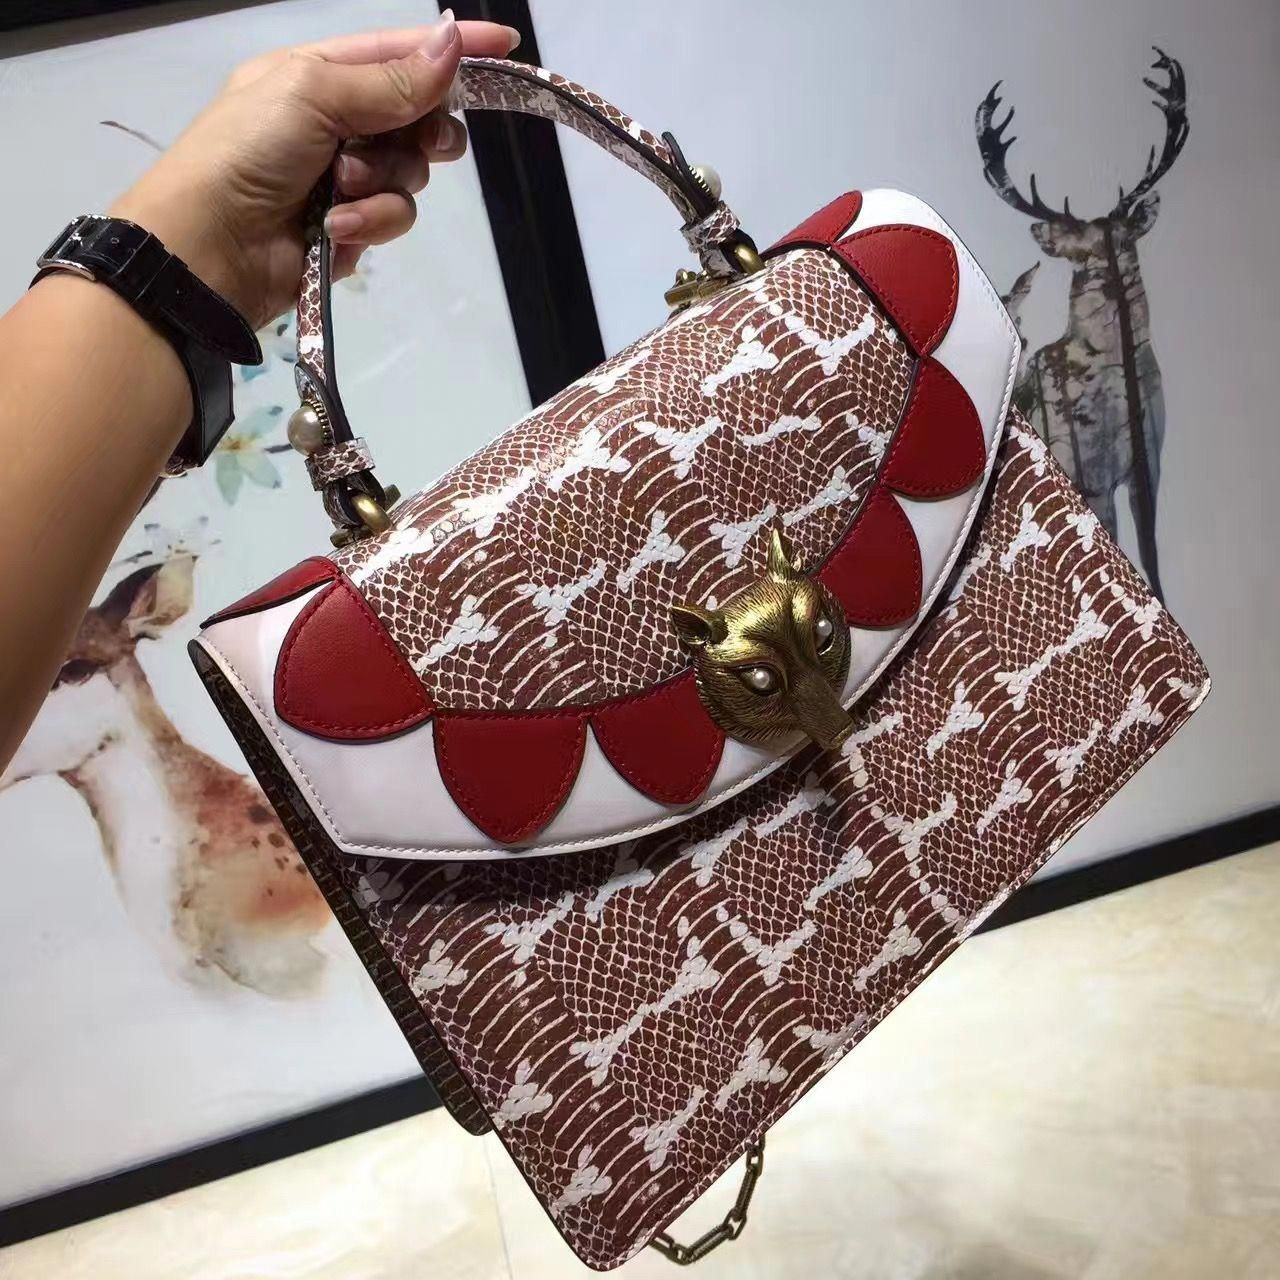 e1b4078667a0 - - #BambooBags | Bamboo Bags | todaypin.com | Bags, Bag sale ve Designer  bags for less